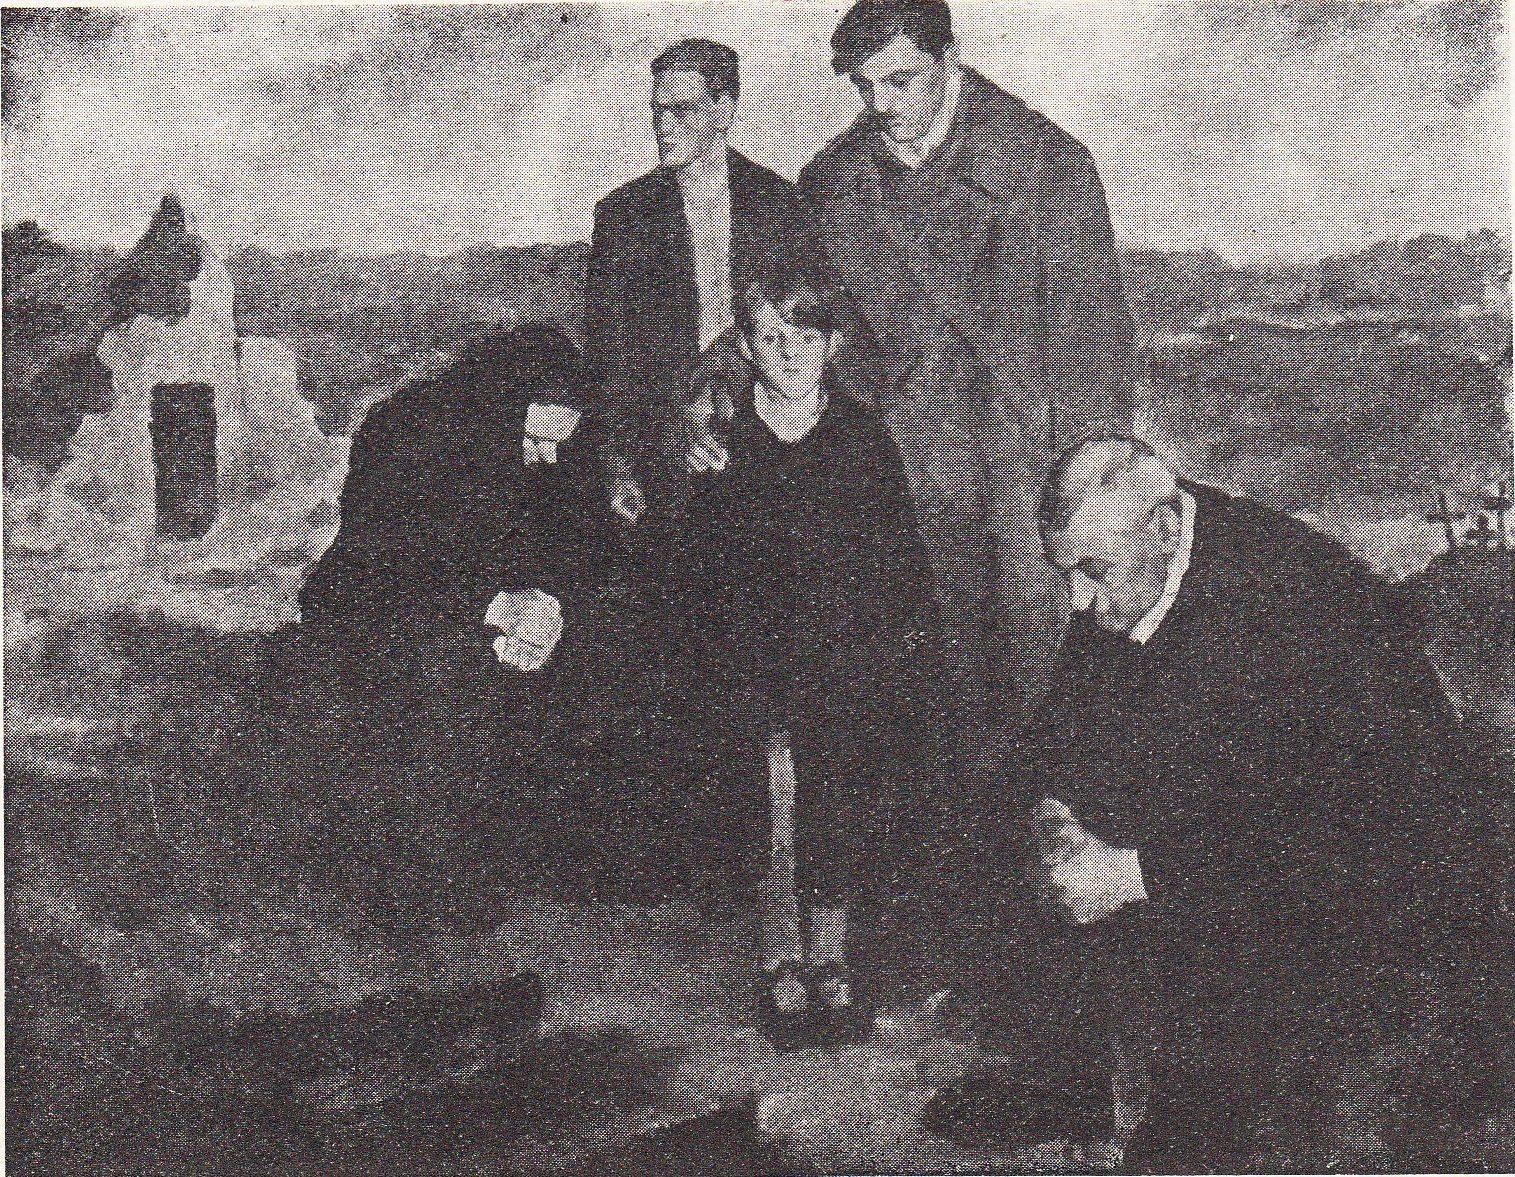 OEUVRE_1931_Delbos_GMBA.jpg